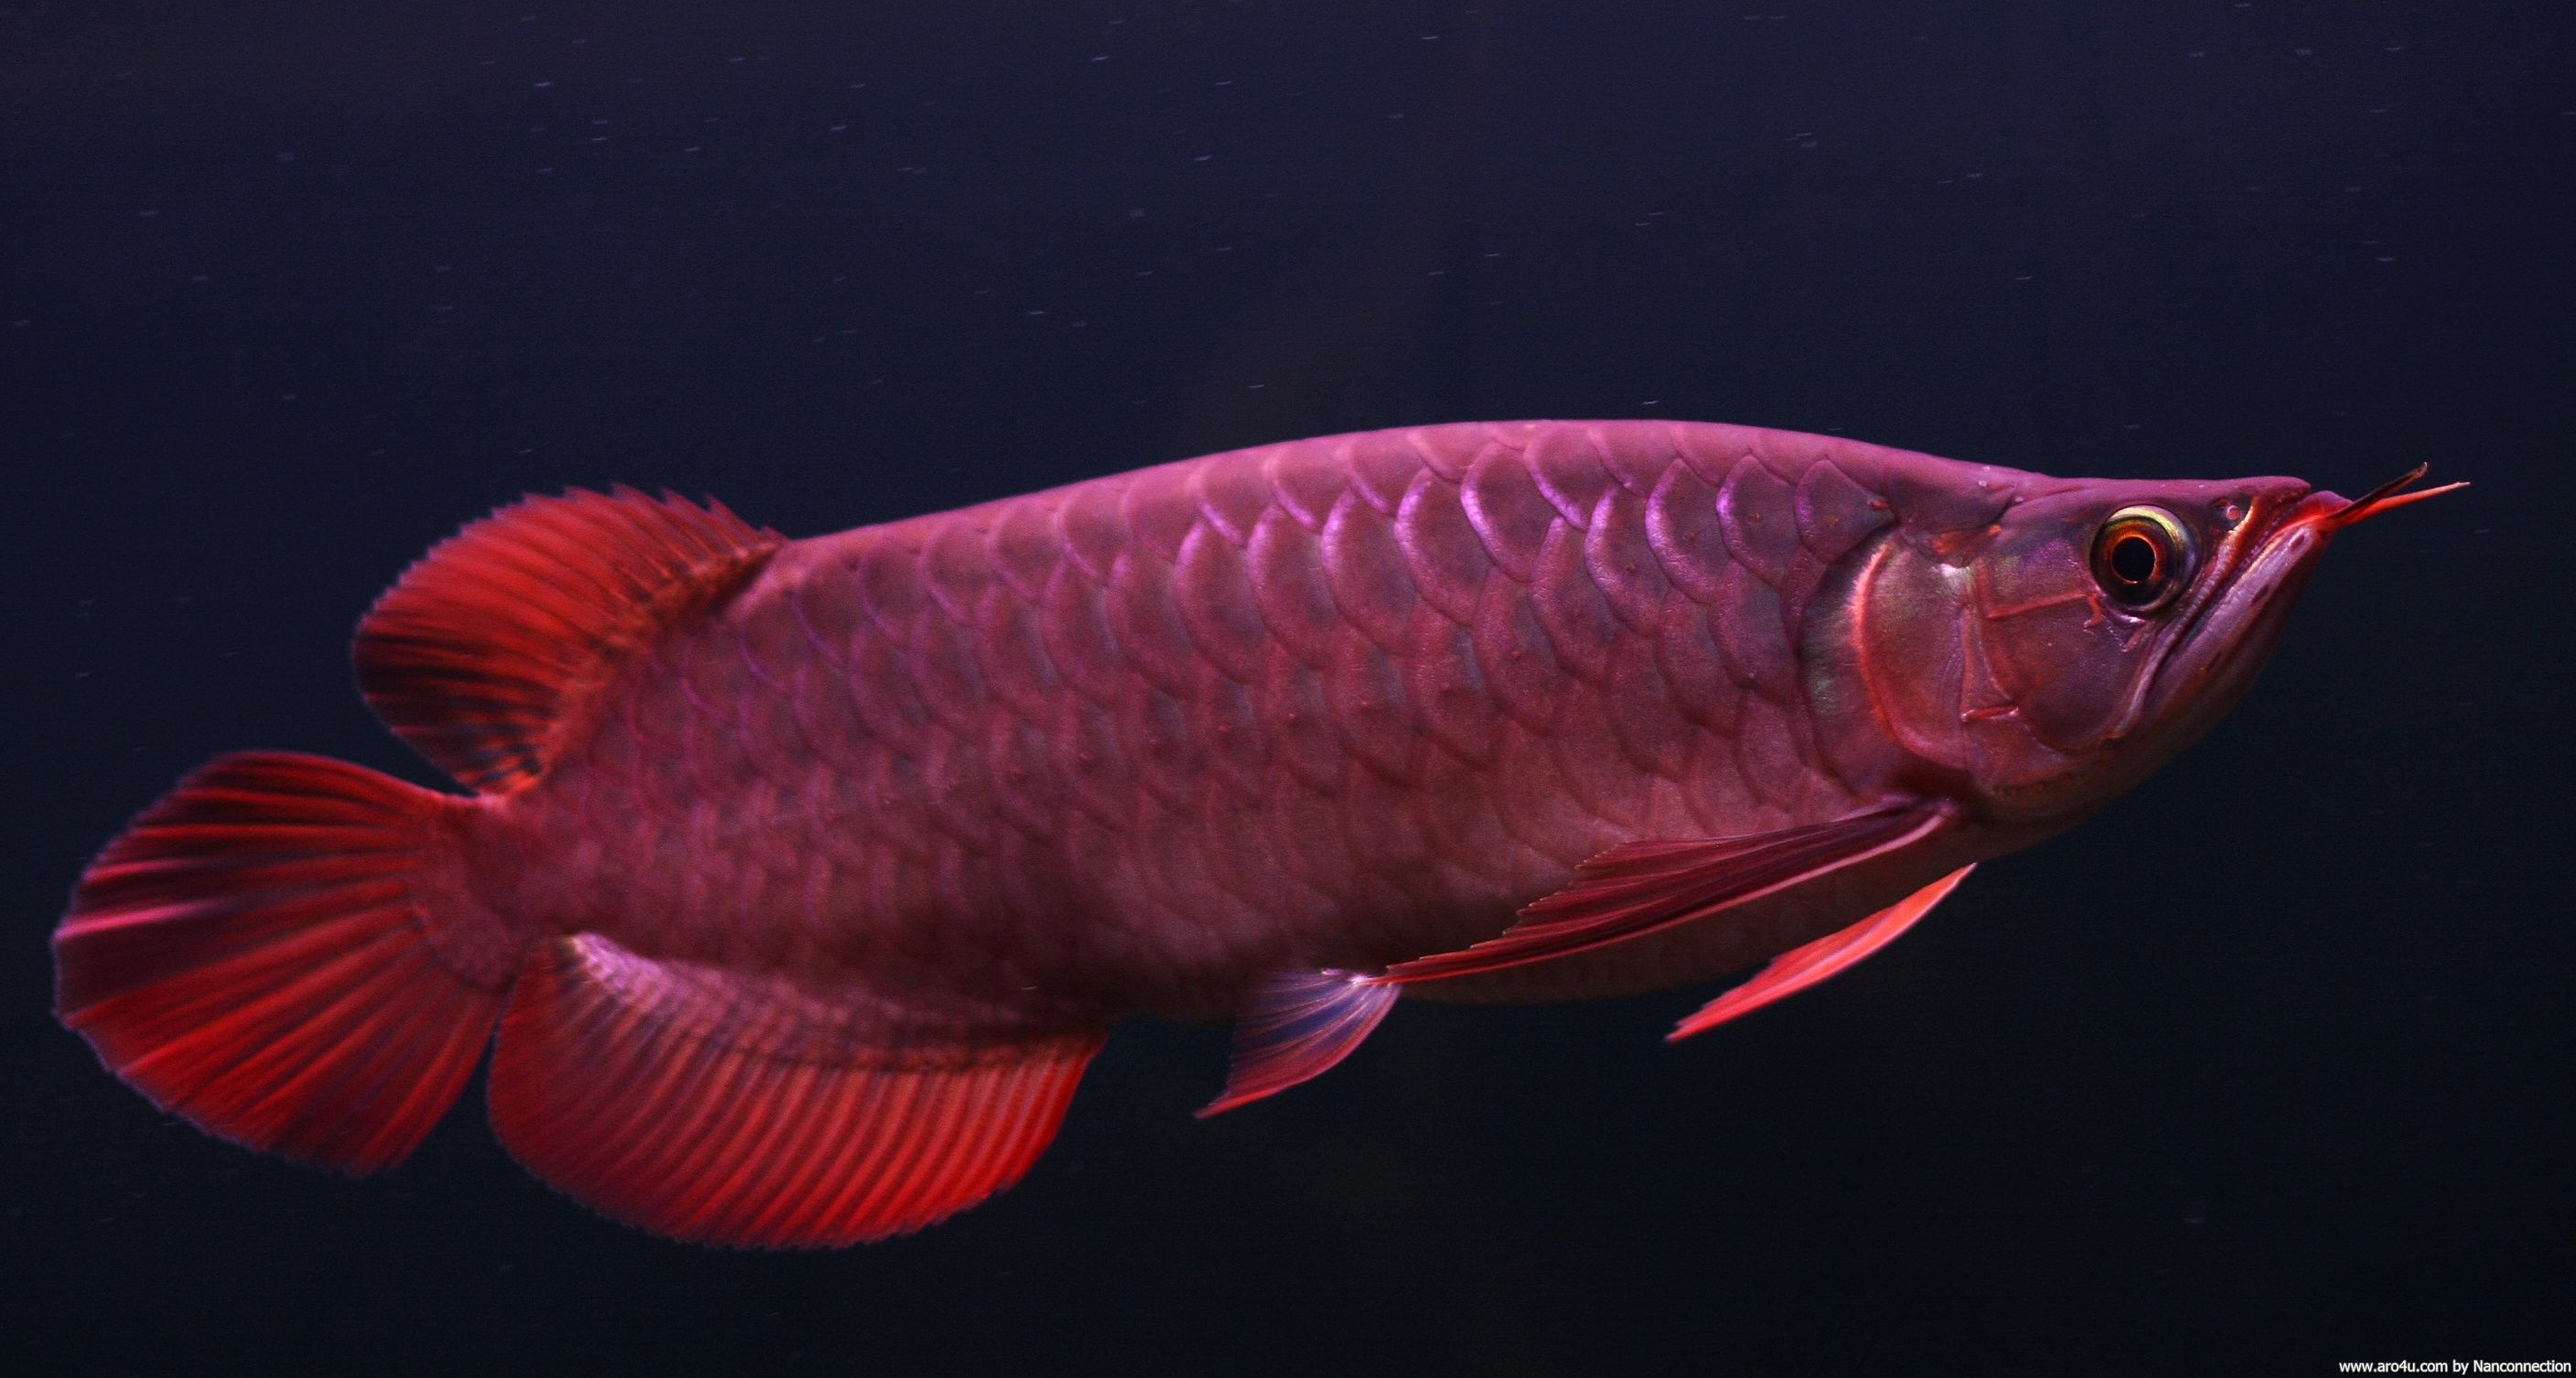 download golden red arowana fish wallpaper hd picture desktop